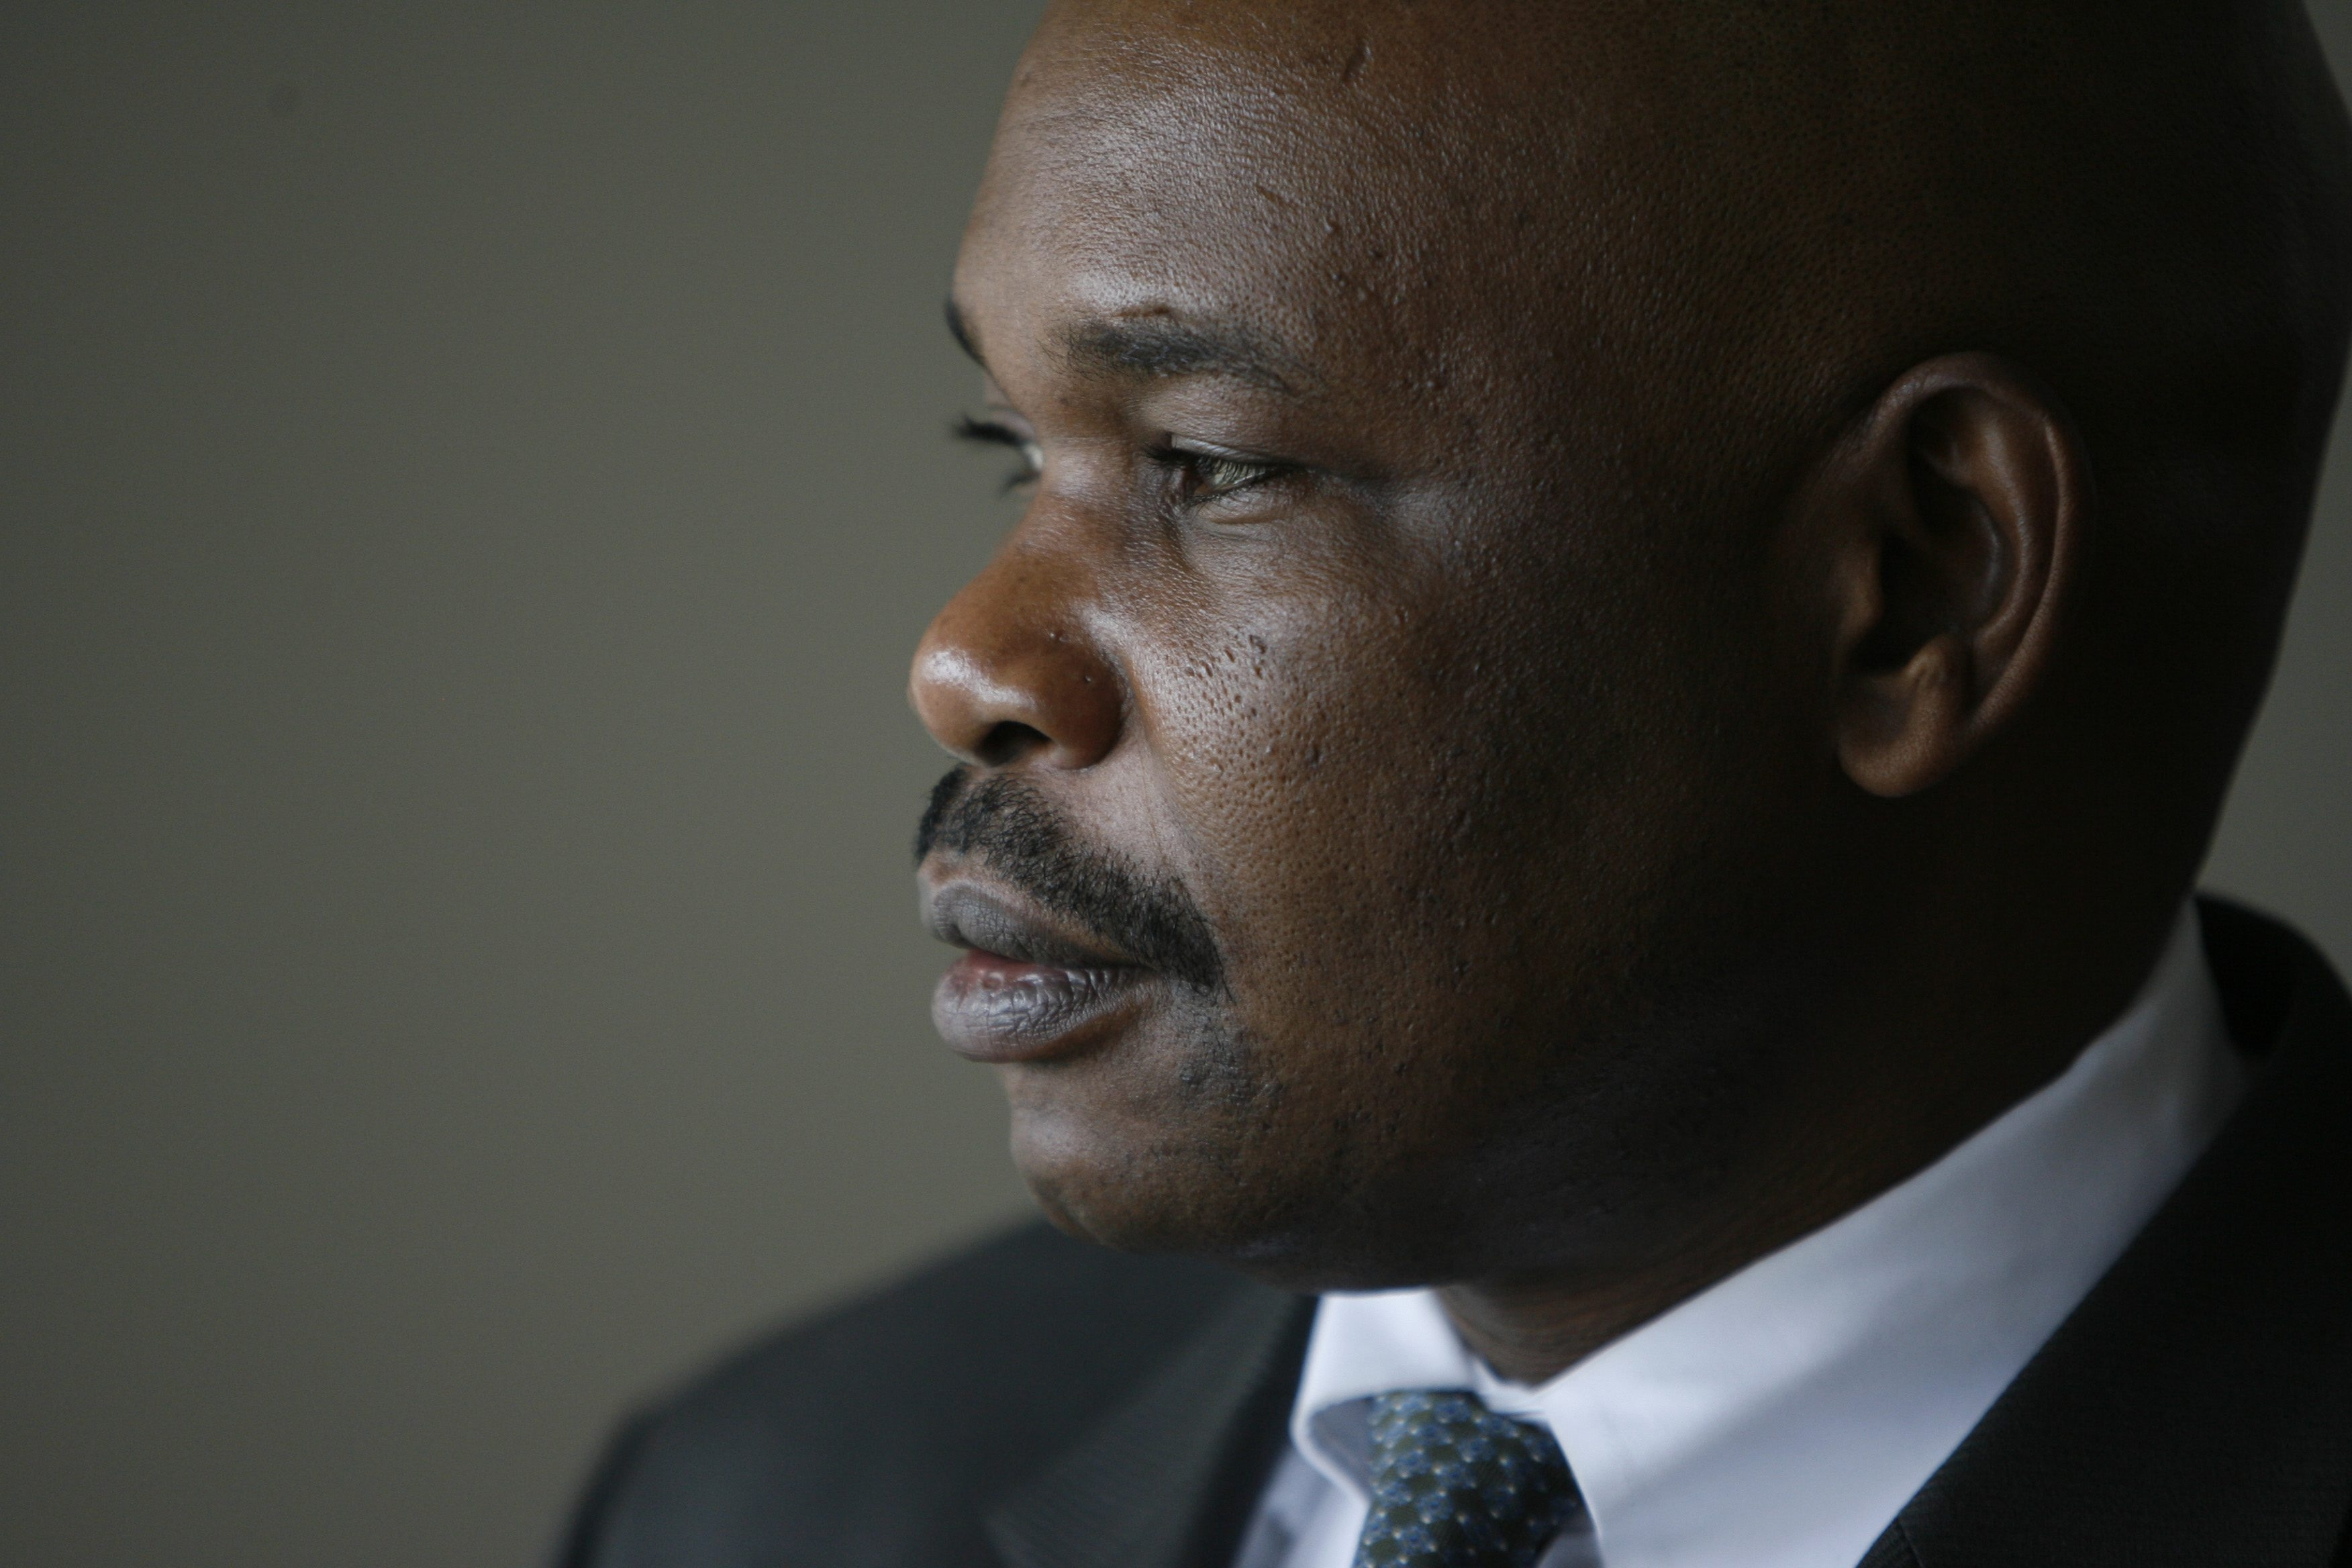 Makau Mutua. Photo by Derek Gee/Buffalo News